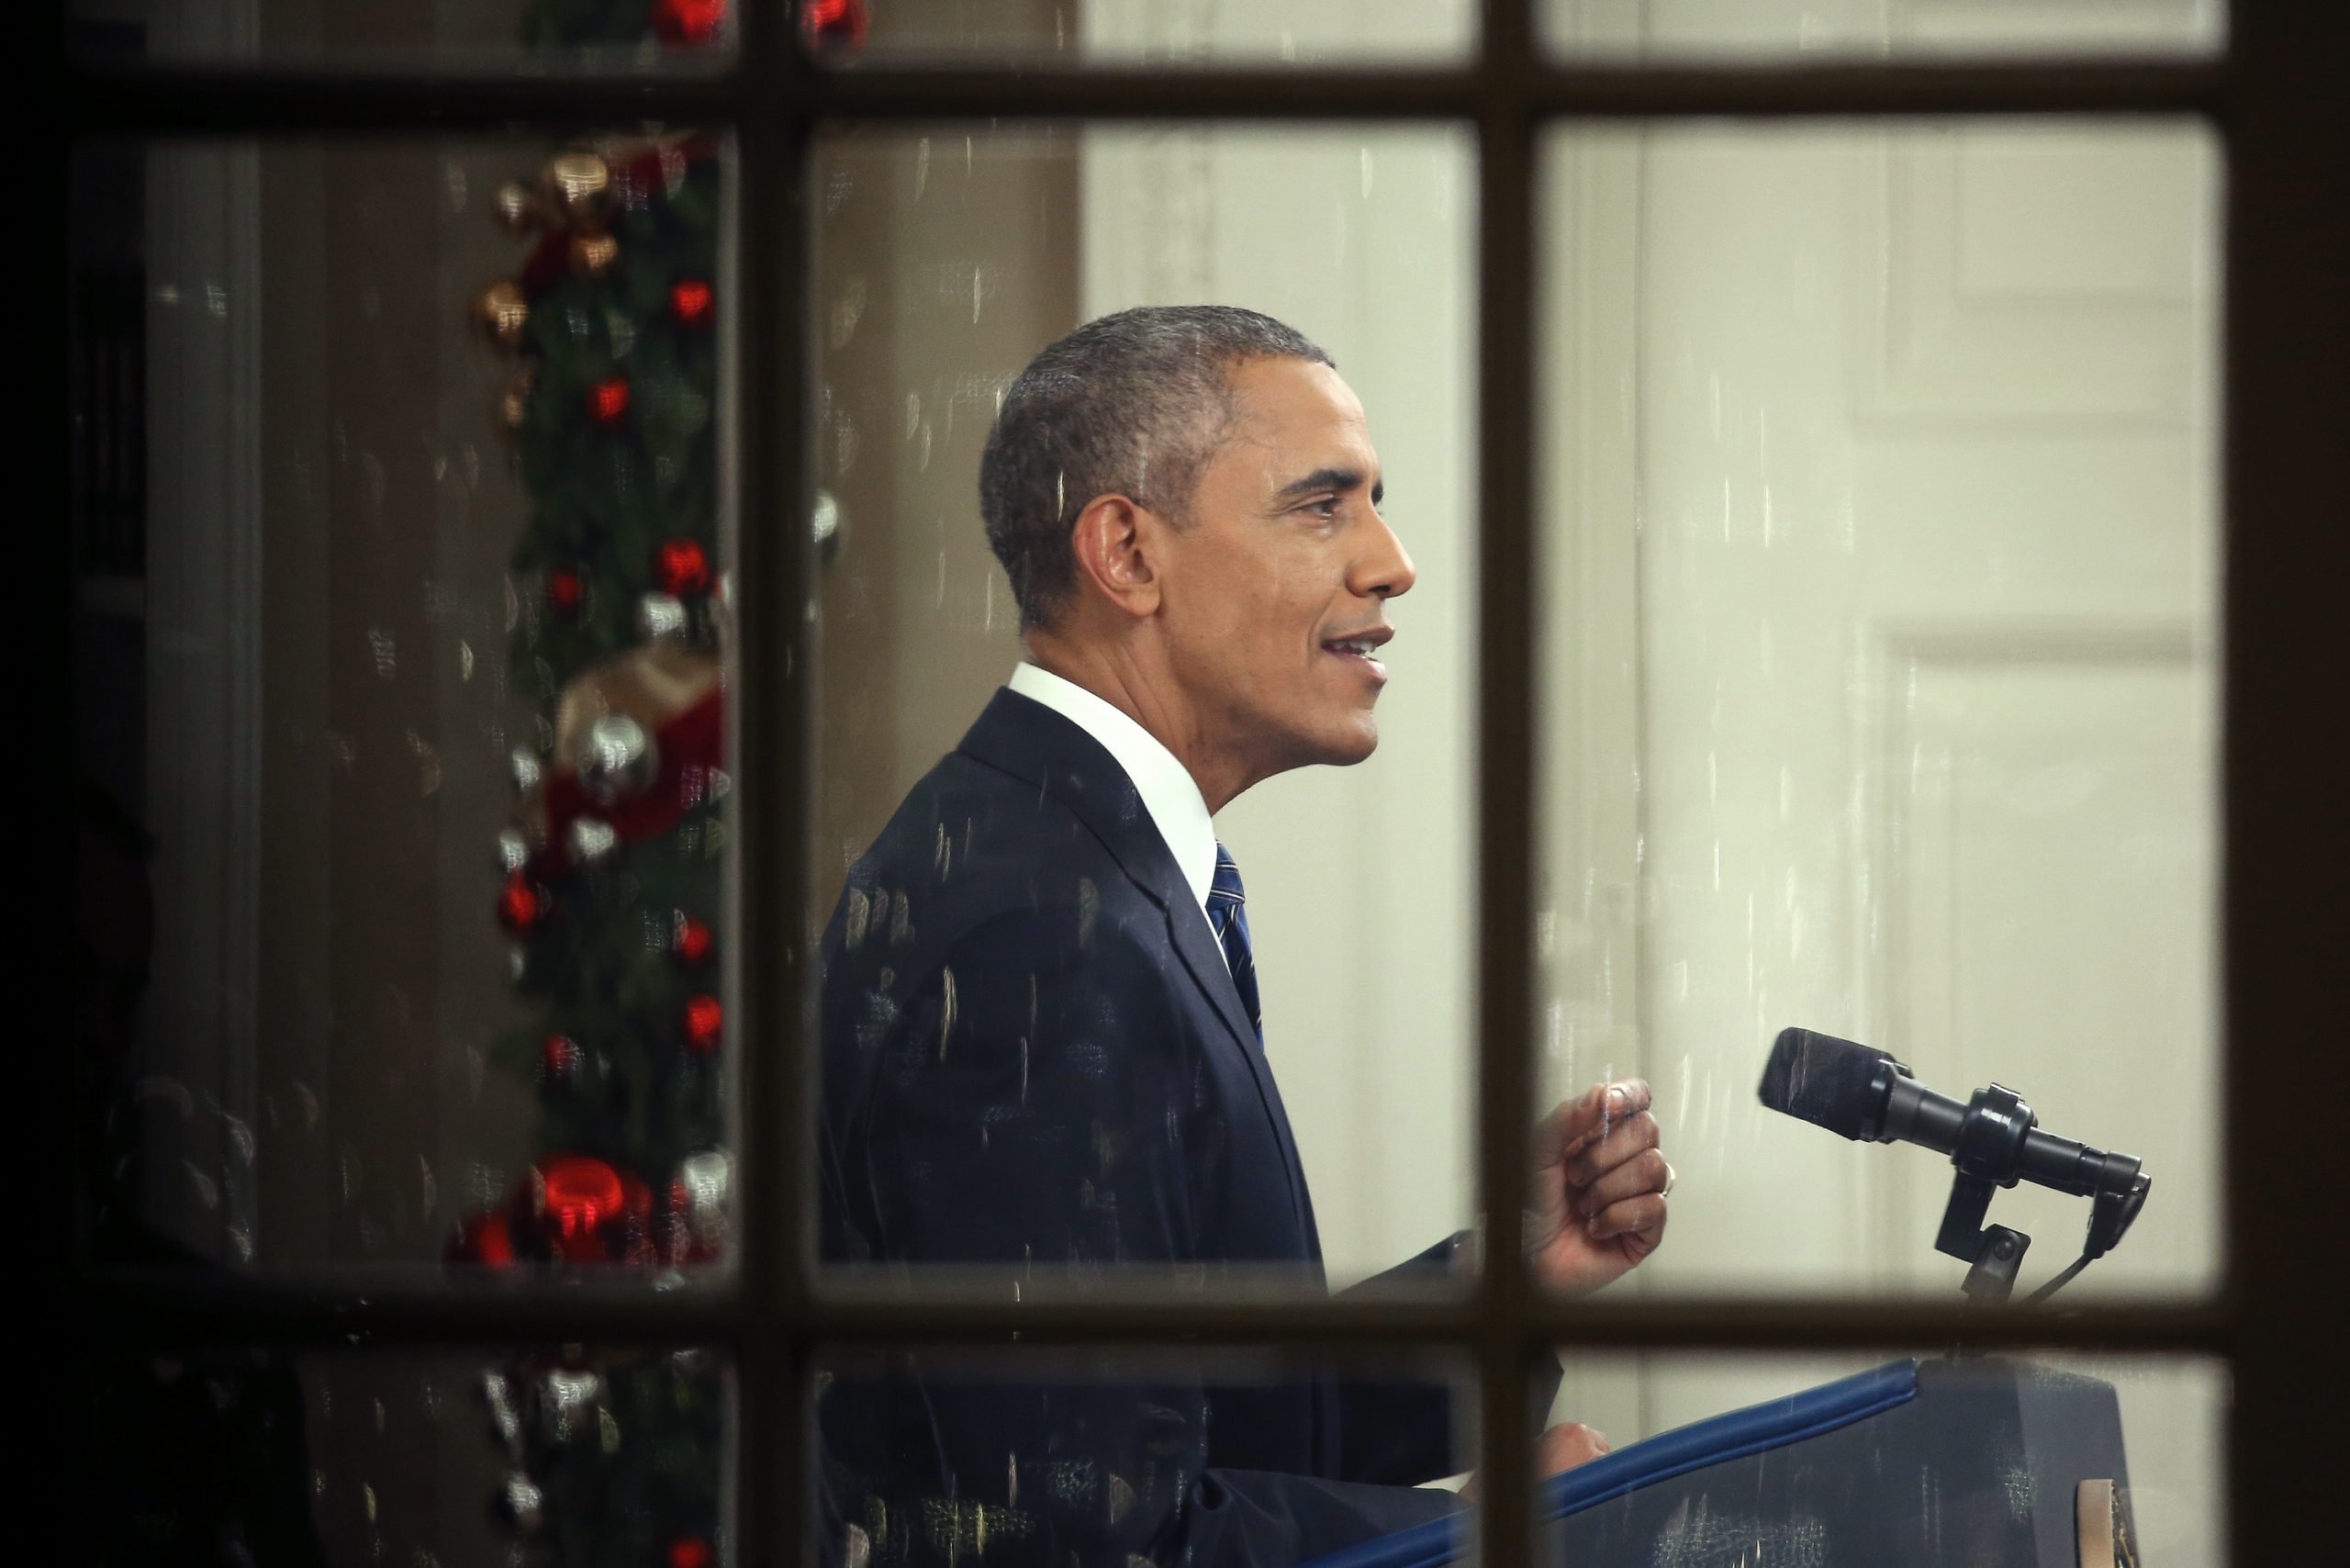 Former U.S. president Barack Obama delivers a national address on his plans to battle the threat of terror attacks and defeating ISIS in the Oval Office in December 2015. (Photo by Win McNamee/Getty Images)